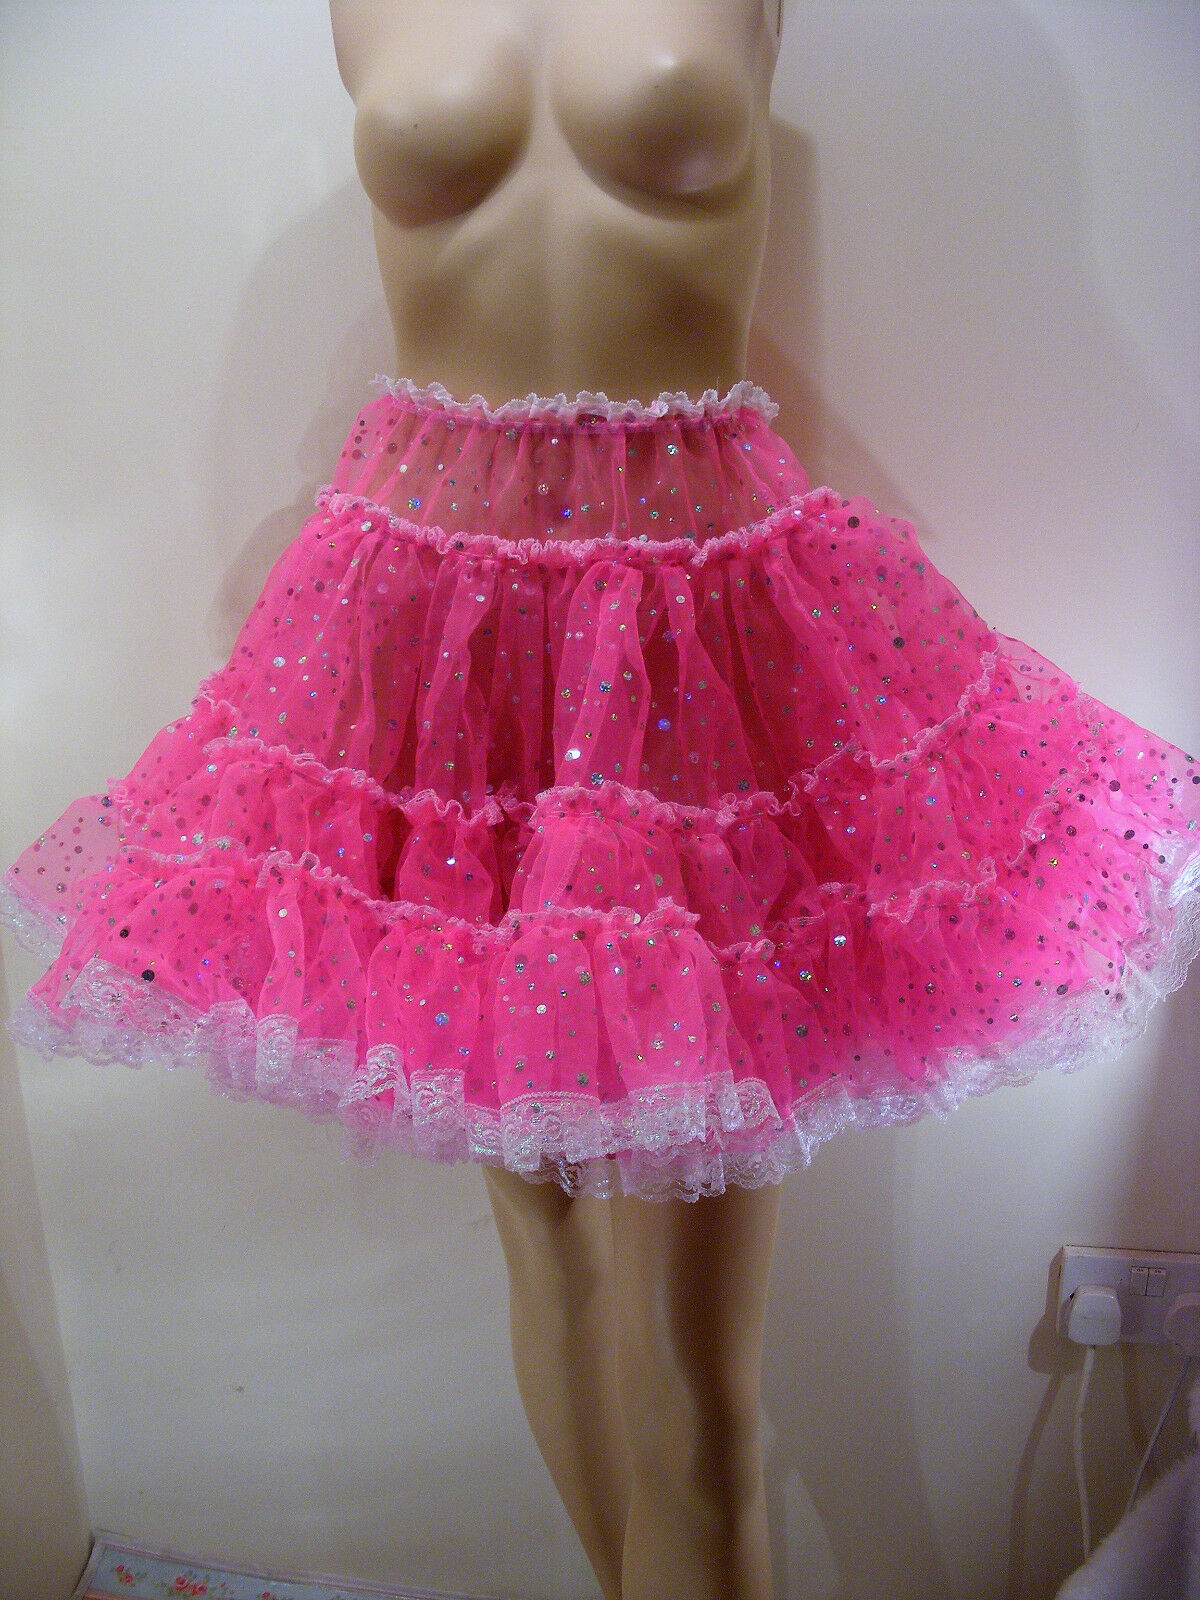 SISSY ADULT BABY PINK SEQUIN ORGAZA SKIRT SLIP 18 LONG LOLITA FANCYDRESS COSPLAY